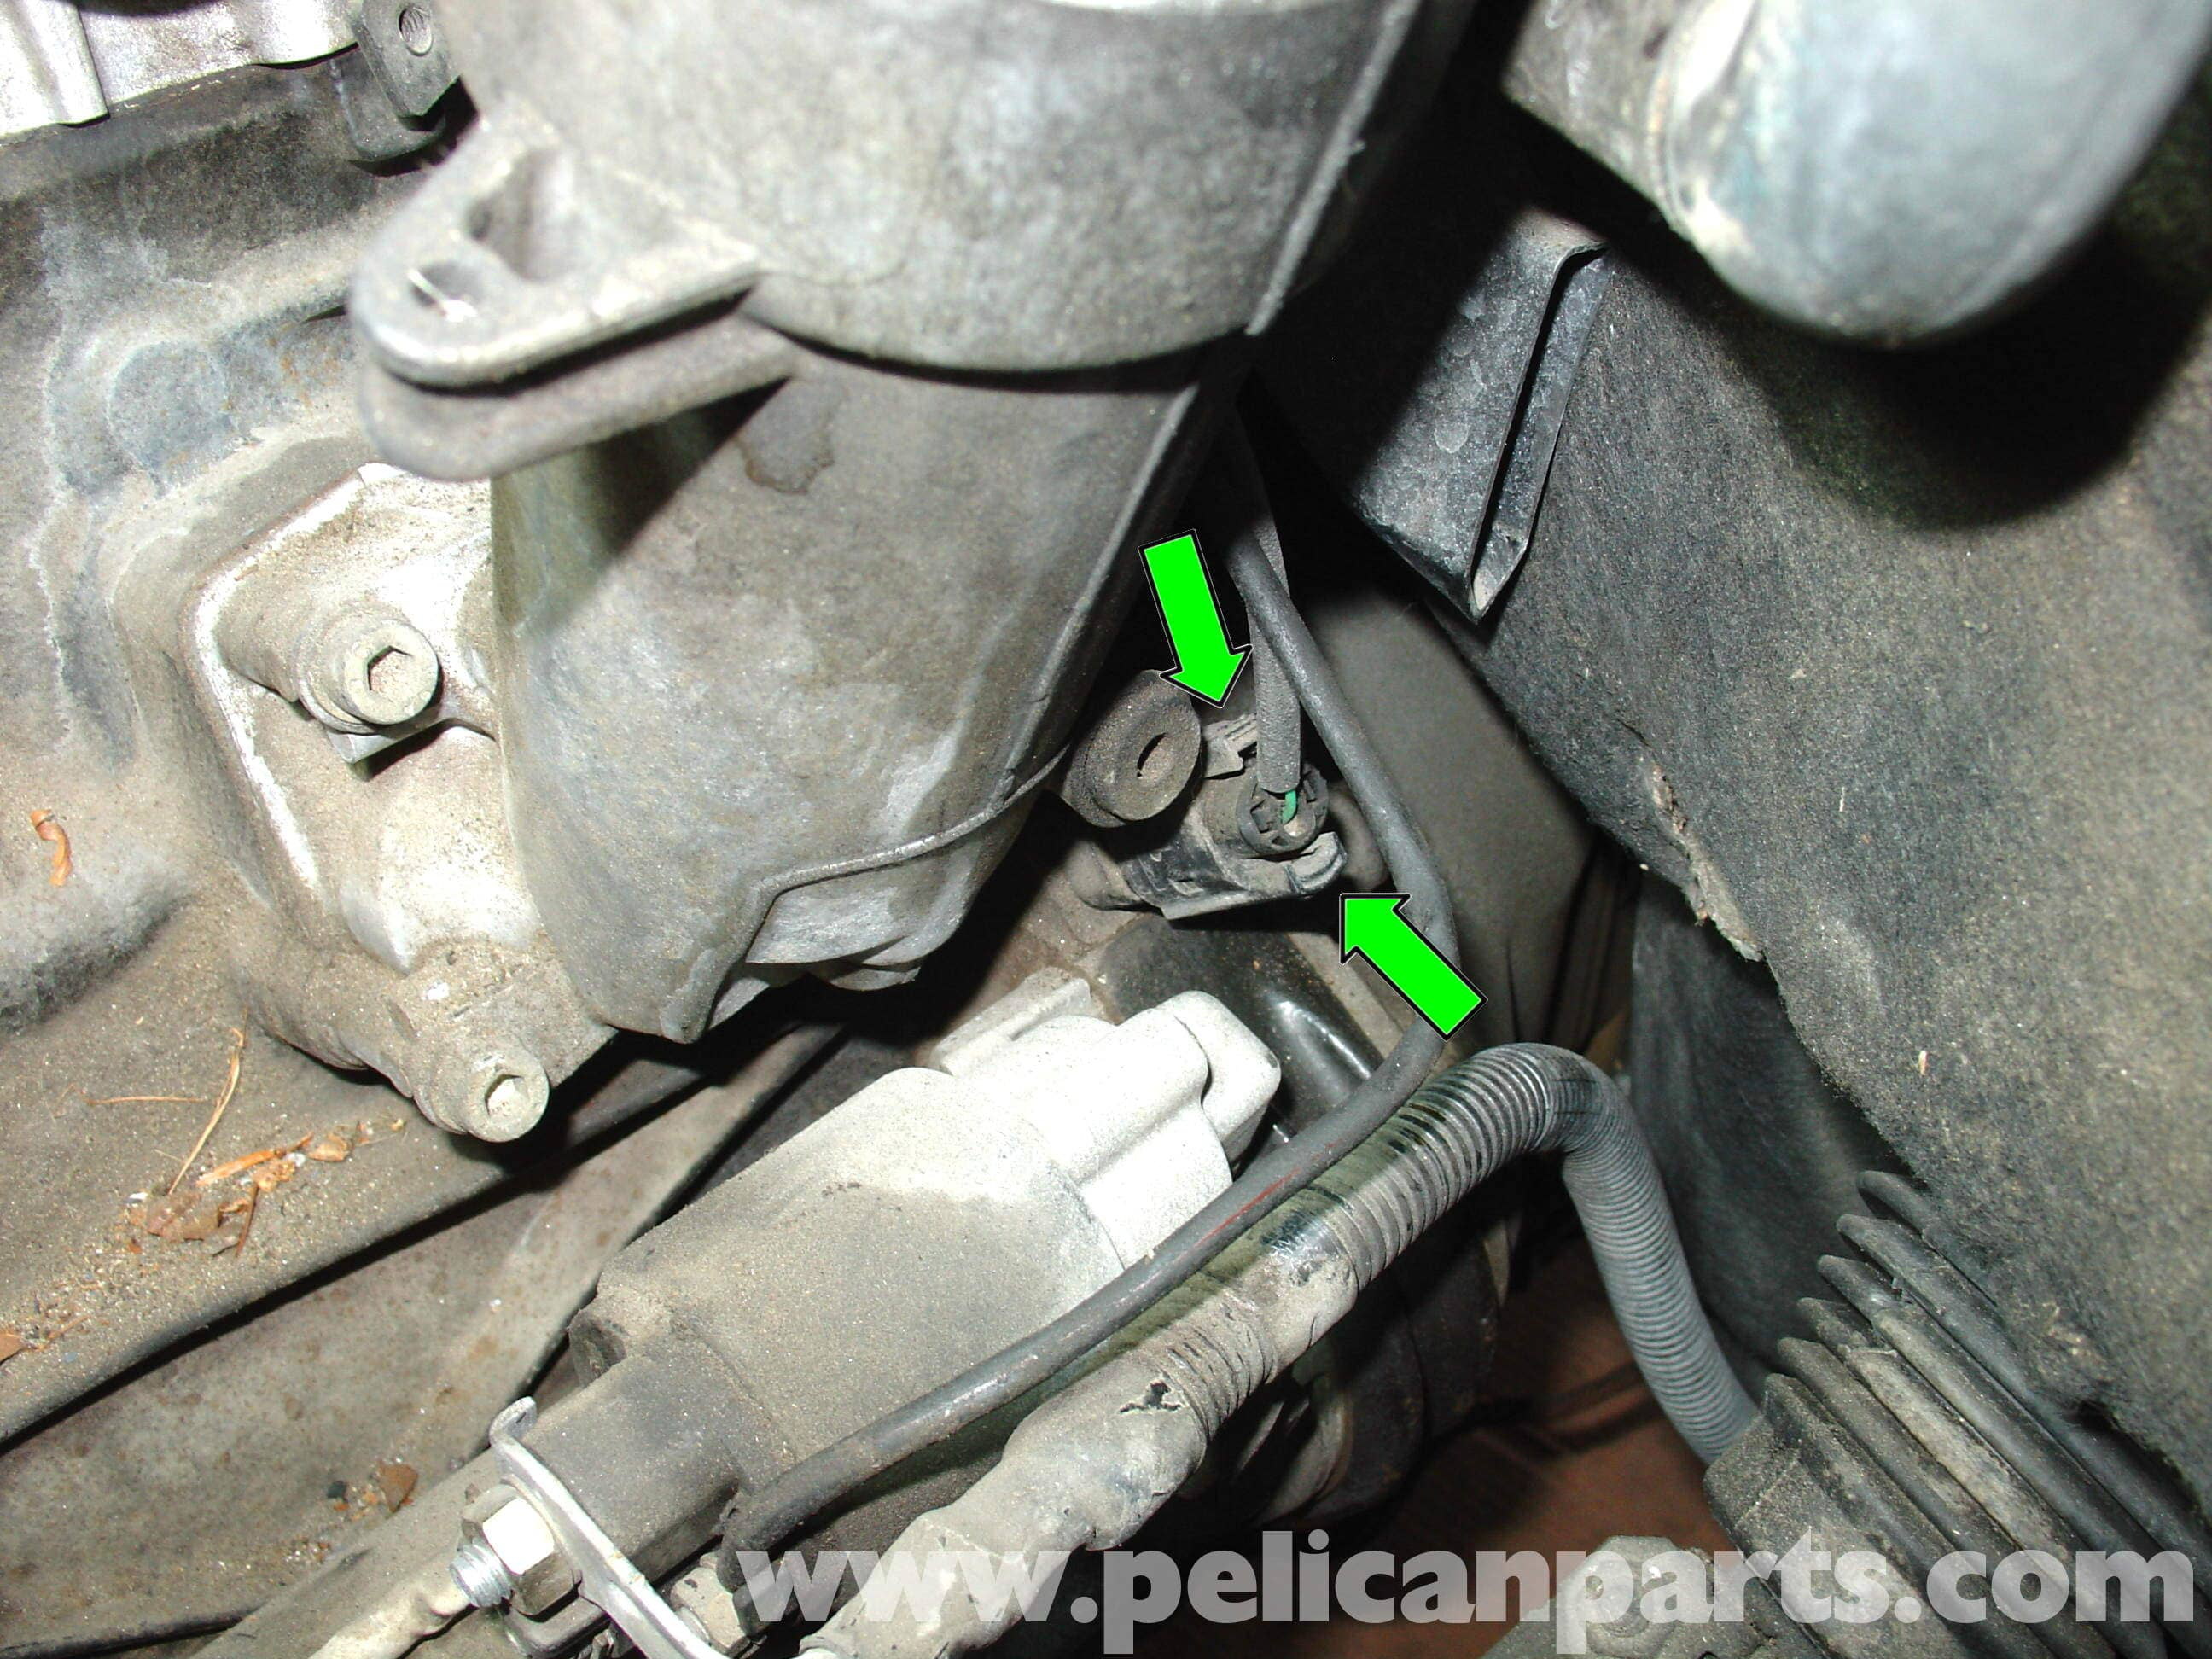 Location Of Oxygen Sensors On Mercedes Benz together with Hello Kitty Wallpapers further Camshaft Position Sensor Replacement Cost further BlazBlue Electro also Watch. on how to replace camshaft sensor on ford 500